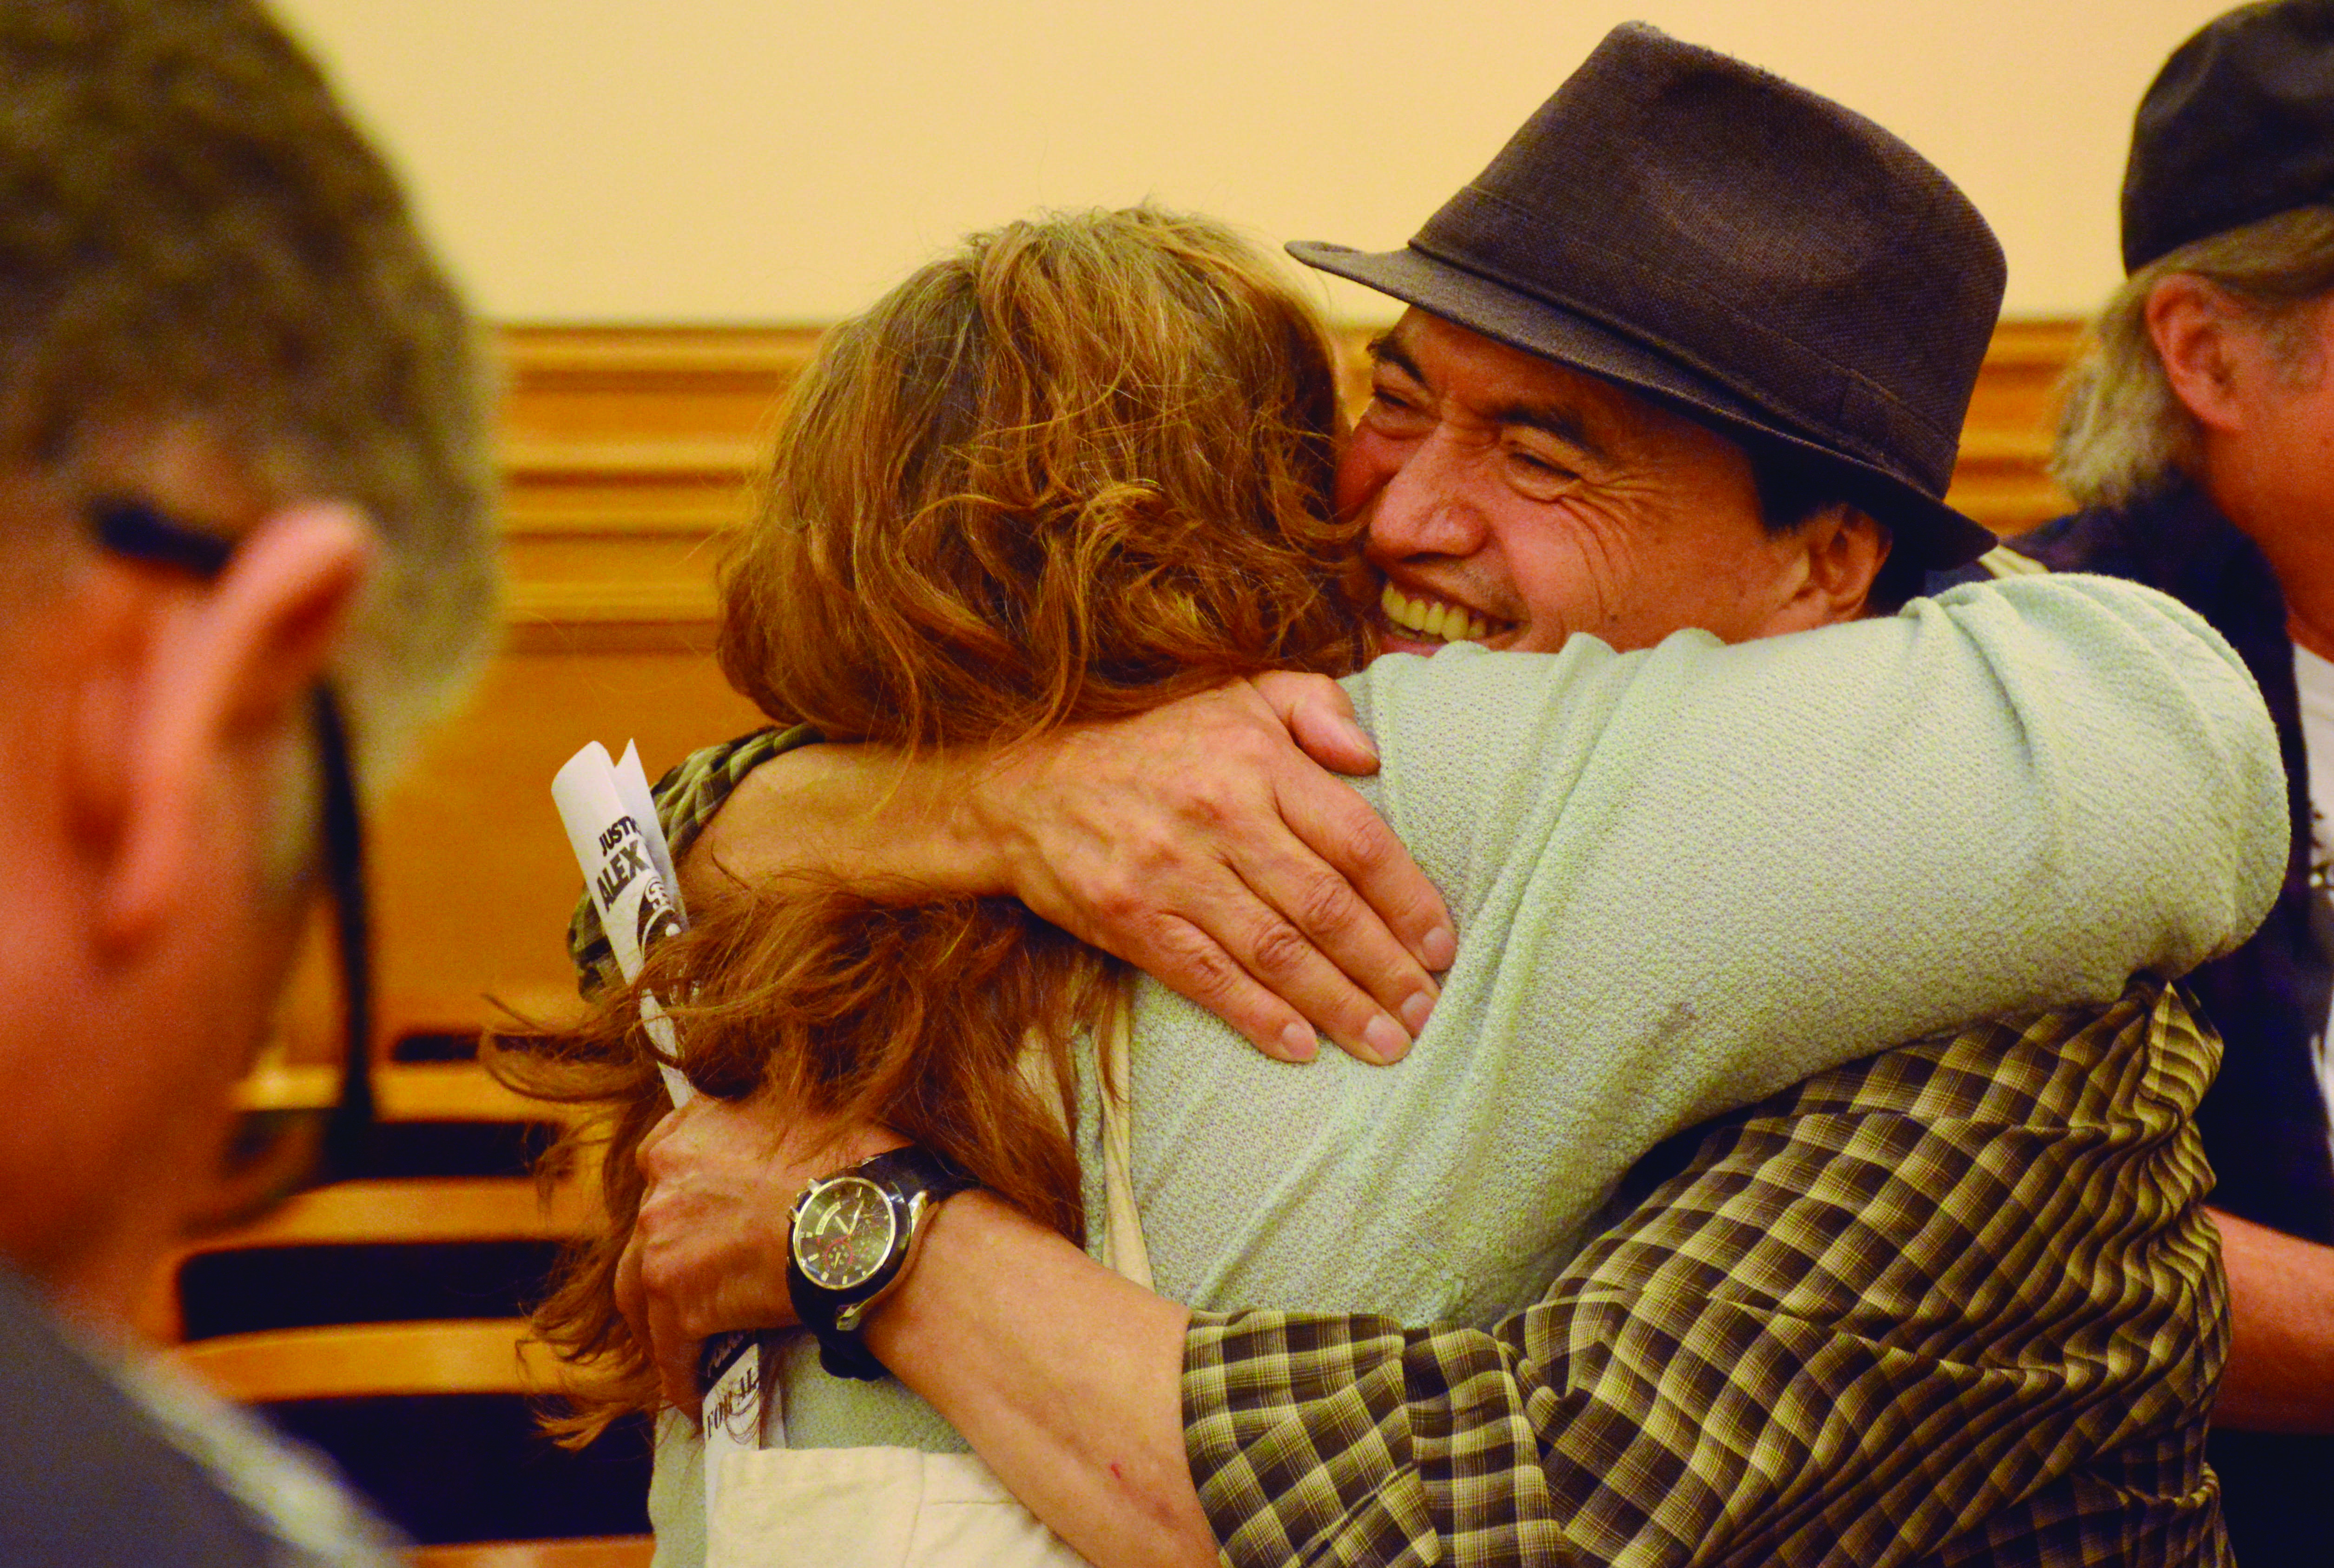 Alex's father, Regugio Nieto, hugs Jennifer Raviv after the decision was made to build a memorial with the proper language to remember Alex Nieto's death in Bernal Heights, where he was shot 59 times by police officers in 2019. Photo by Tristen Rowean.